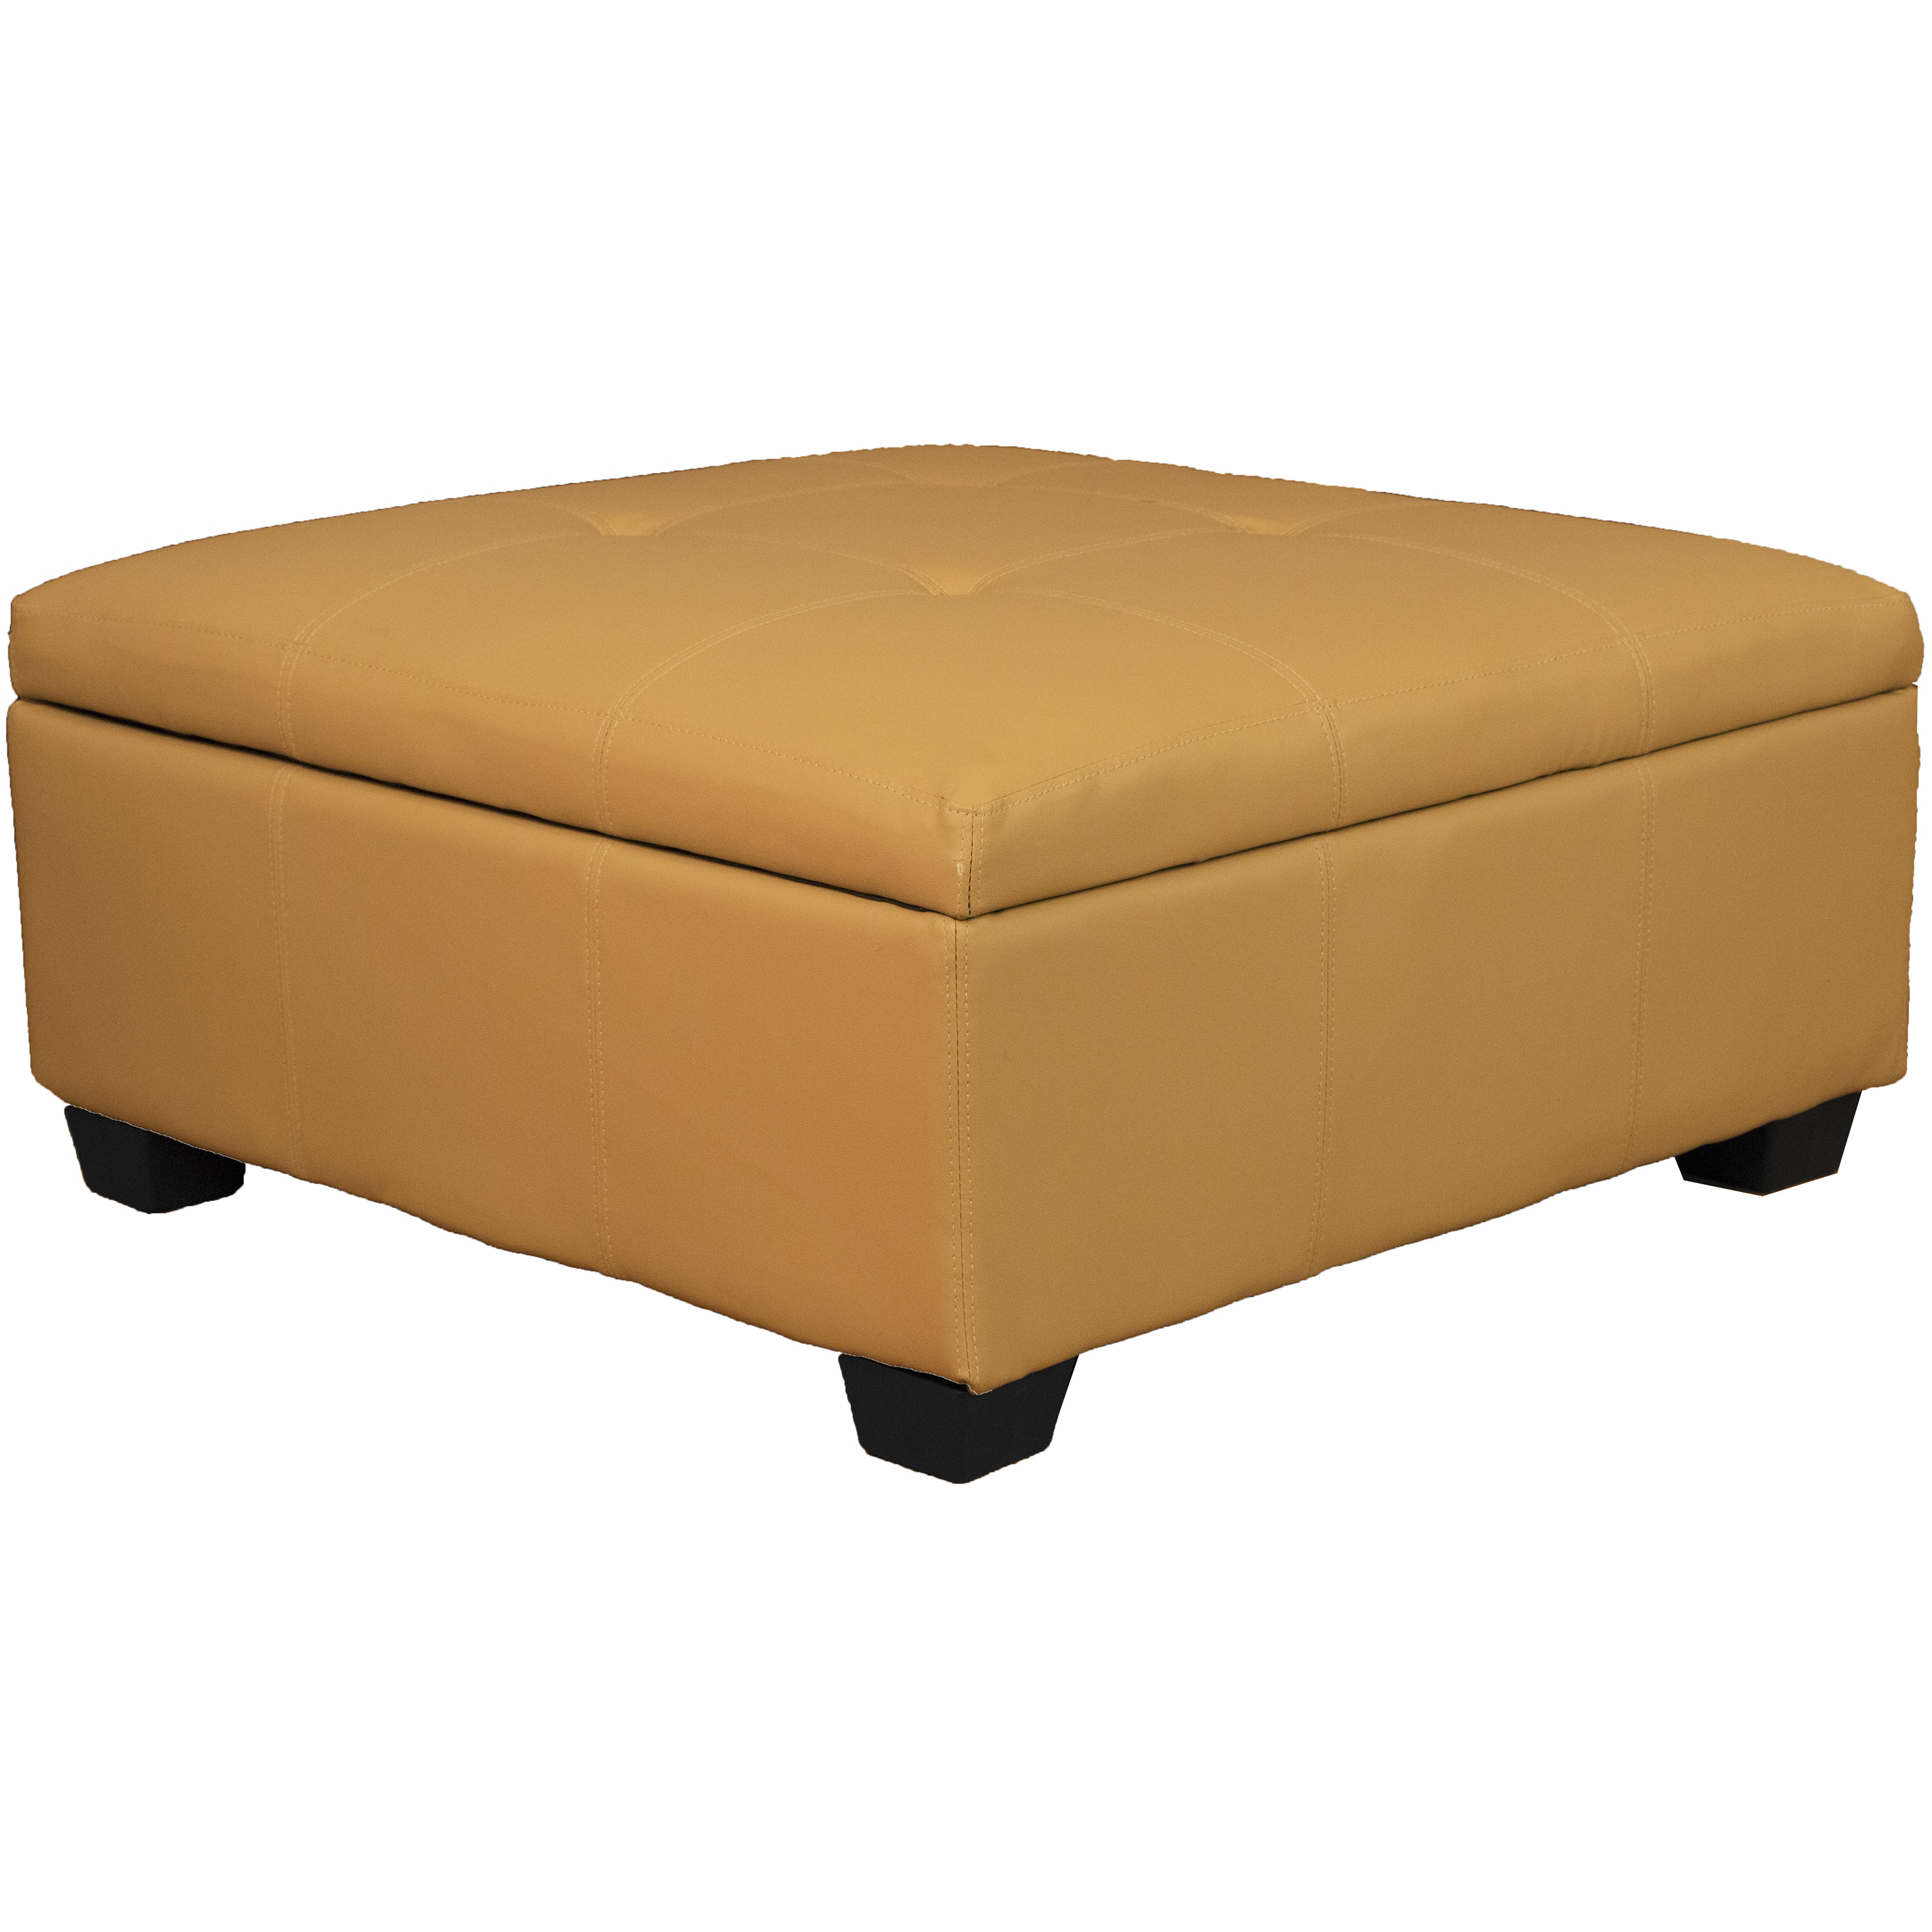 Timeless 36 Inch Large Square Tufted Padded Hinged Storage Ottoman